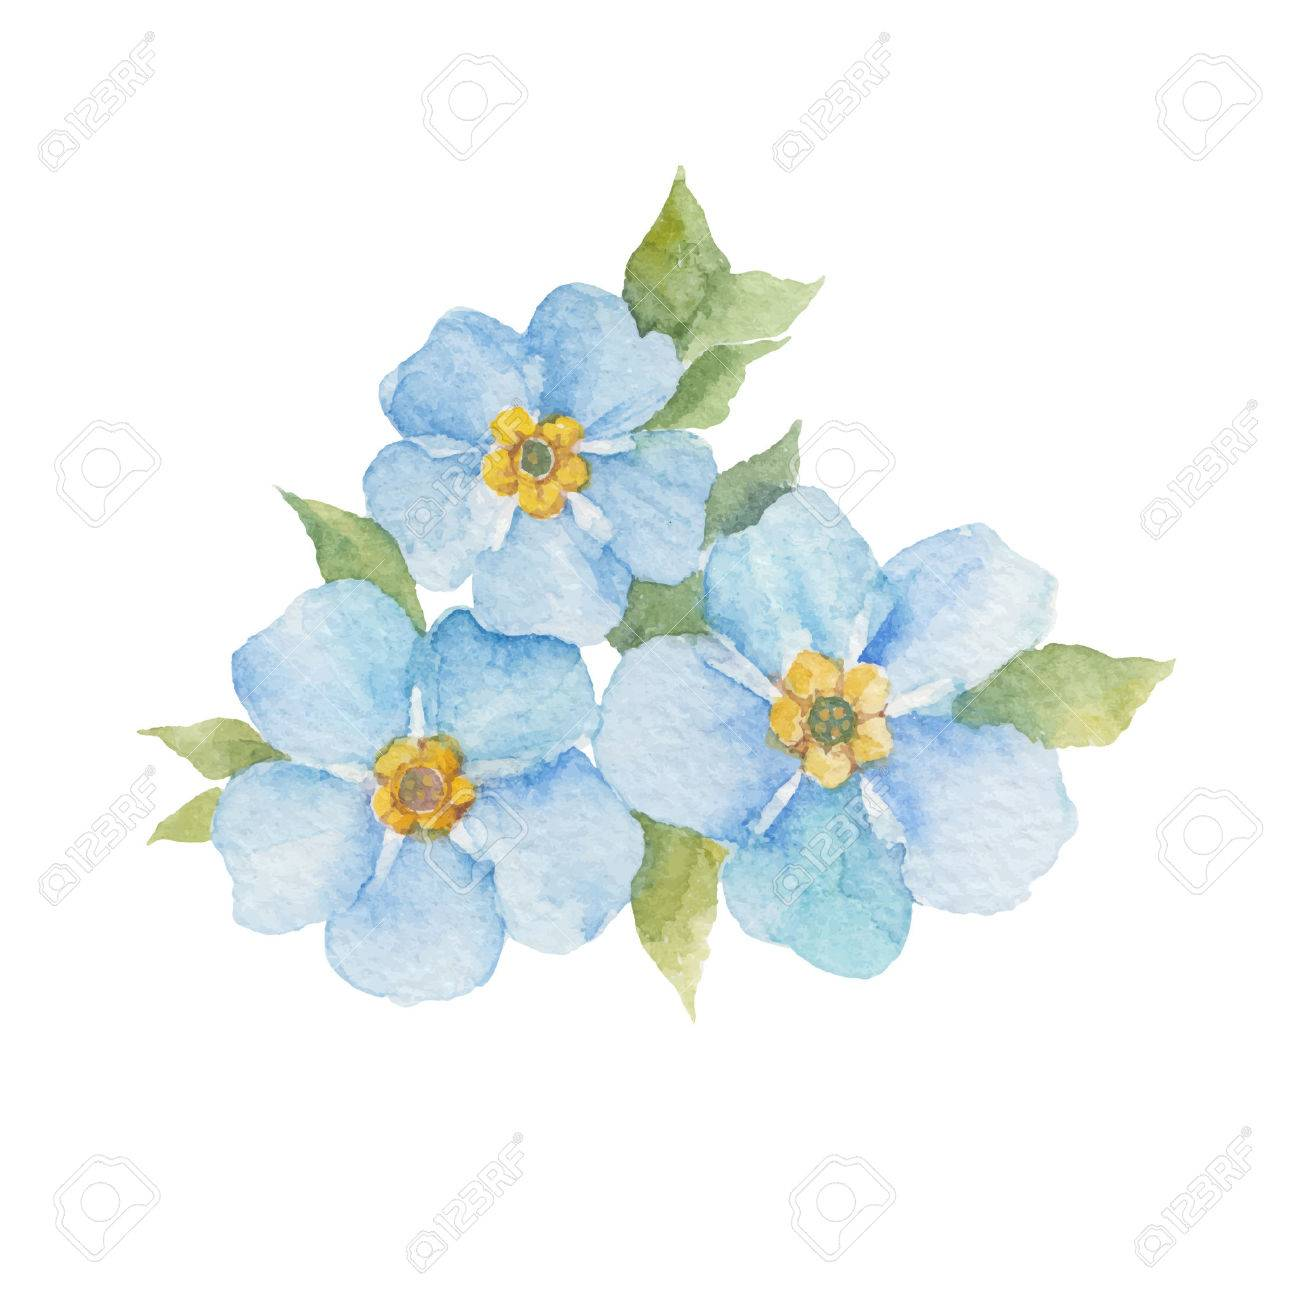 Forget Me Not Flowers Isolated On White Background Watercolor